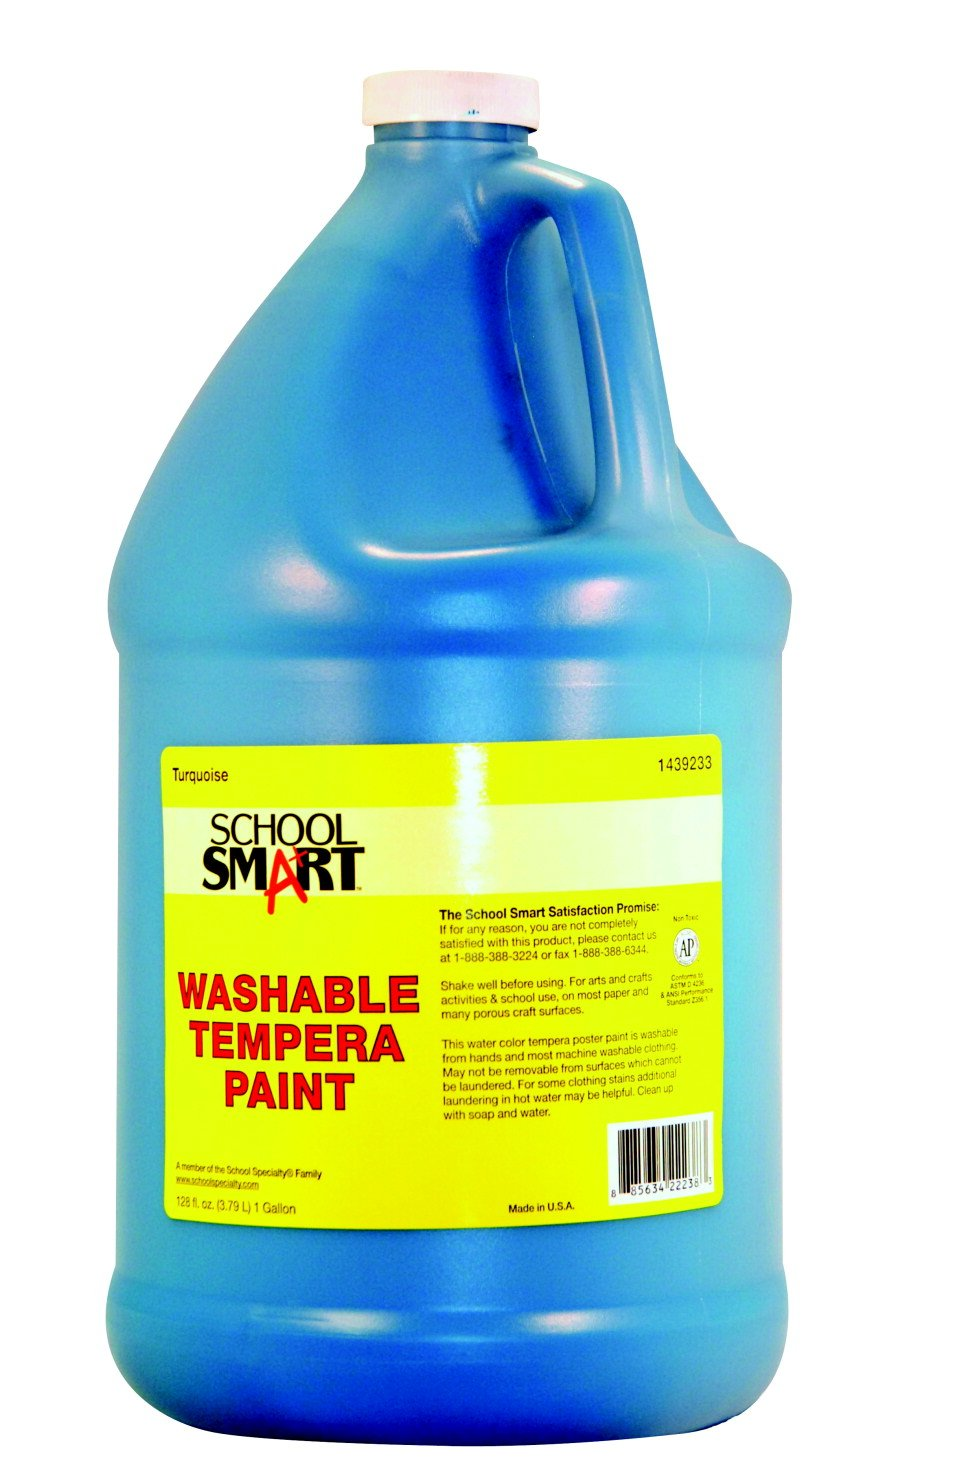 School Smart 1 Gal. Non-Toxic Washable Tempera Paint, Turquoise   B00BD602OY